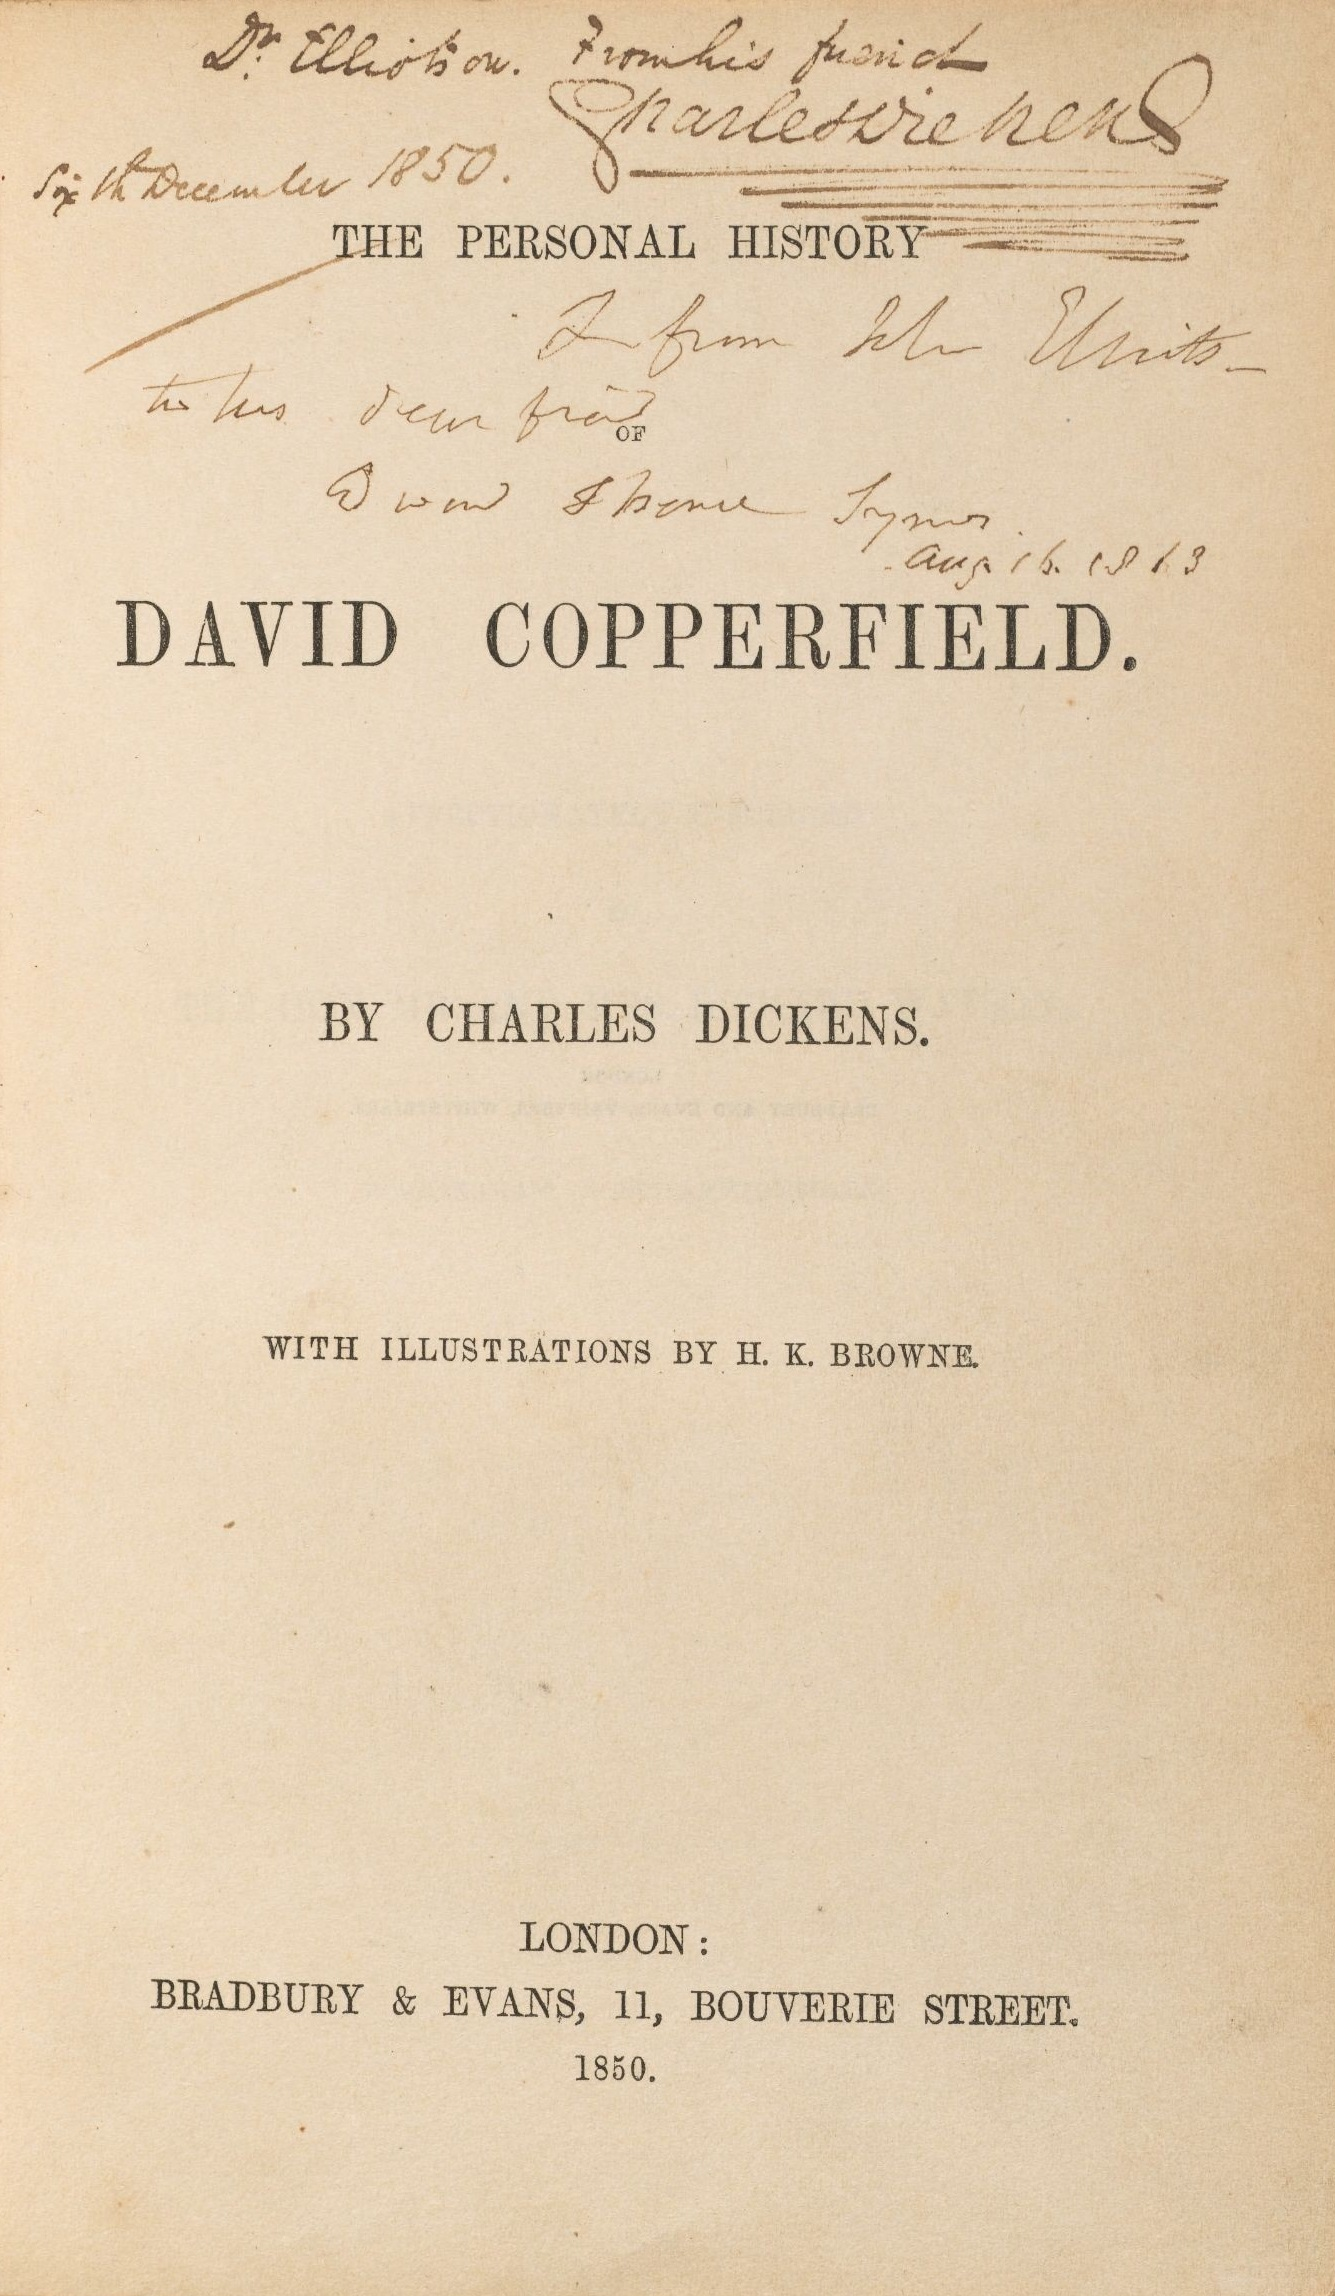 david copperfield on org david copperfield houghton hew 2 6 15 dickens